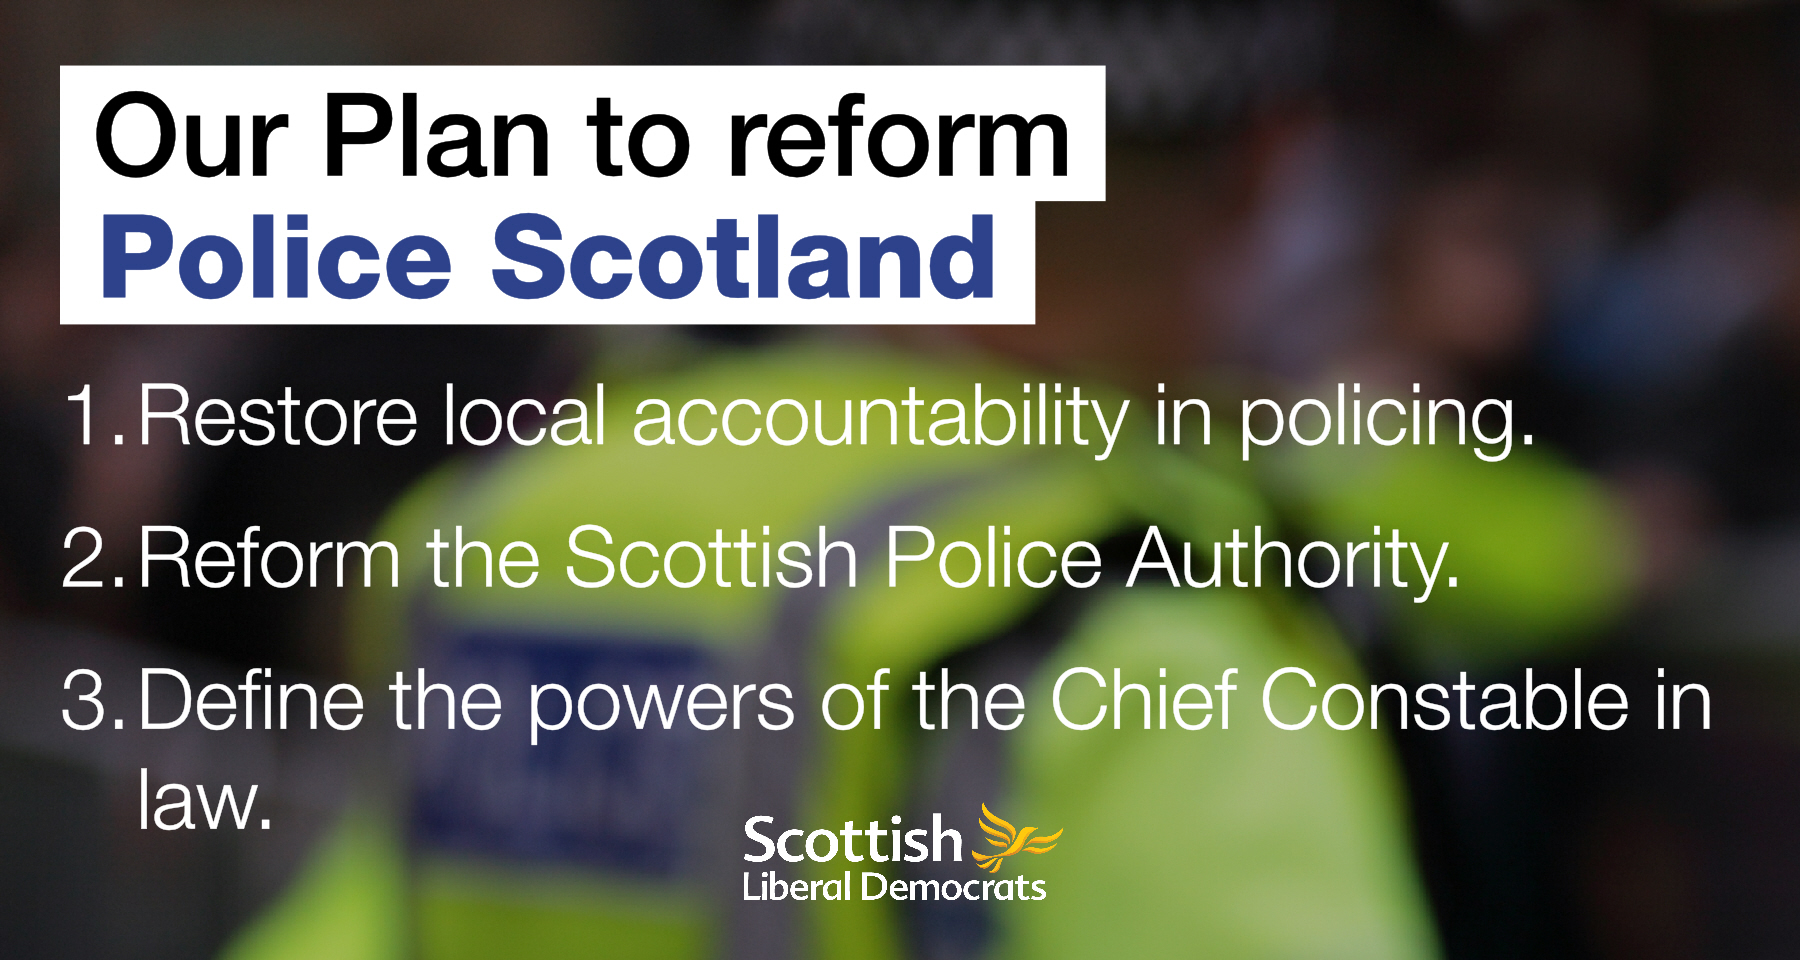 Put democracy back into Scottish policing